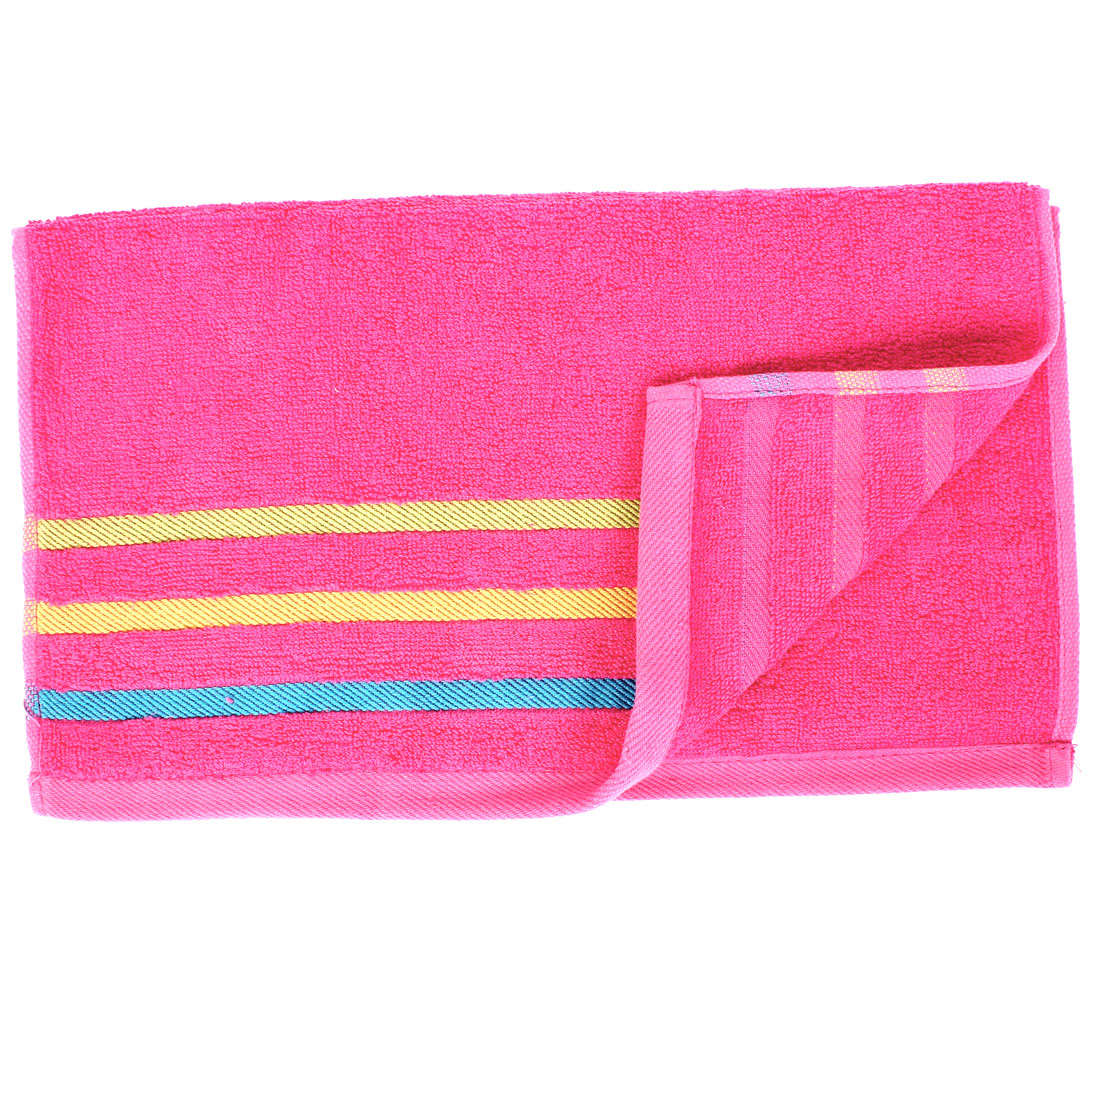 Cotton Blend Hair Wash Drying Bath Shower Beach Hand Face Towel Washcloths Fuchsia